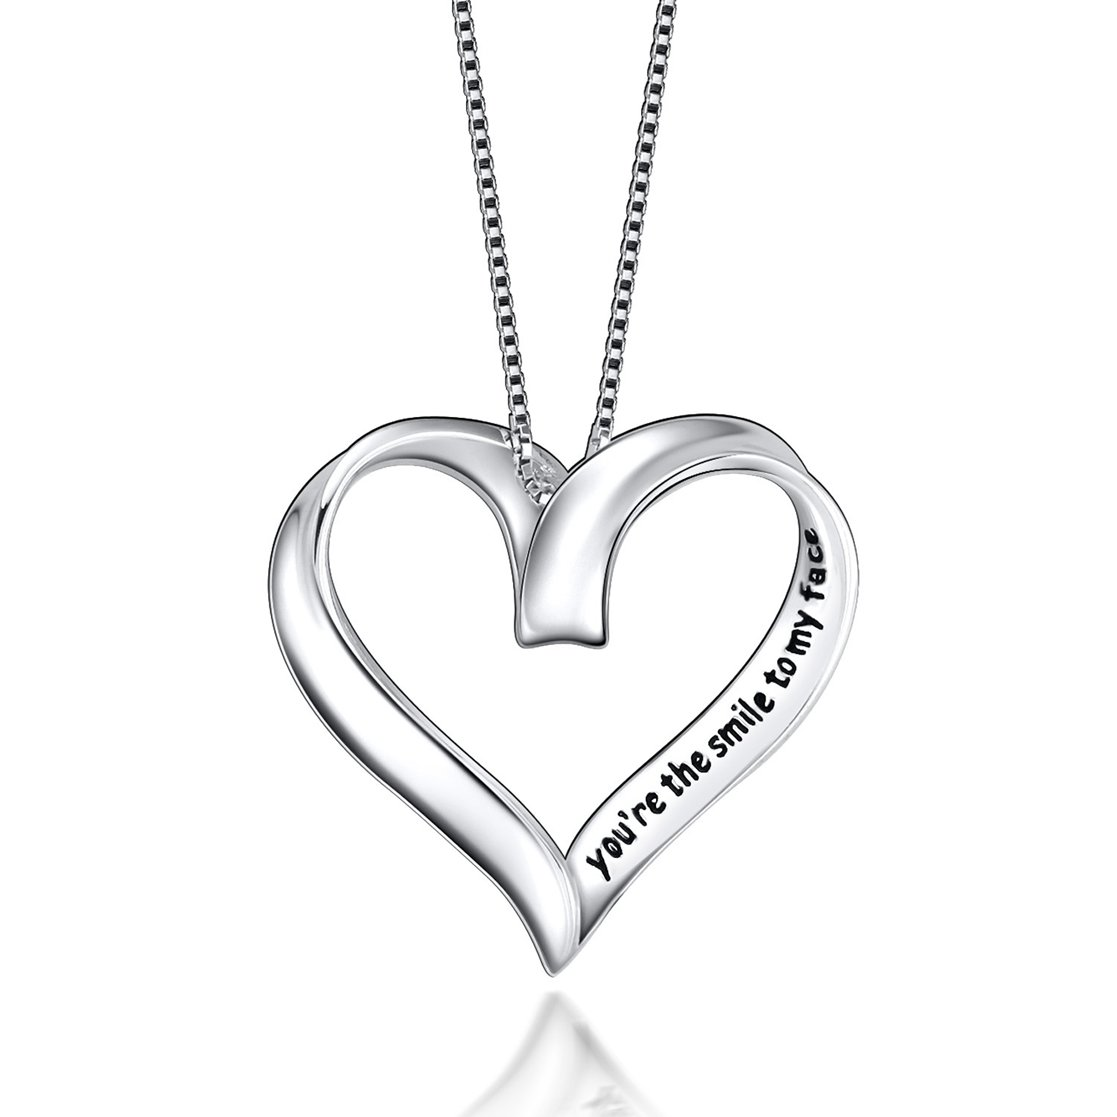 18 inches SILVERLUXY Fine Jewelry Sterling Silver Heart in Love Charm Pendant Necklace